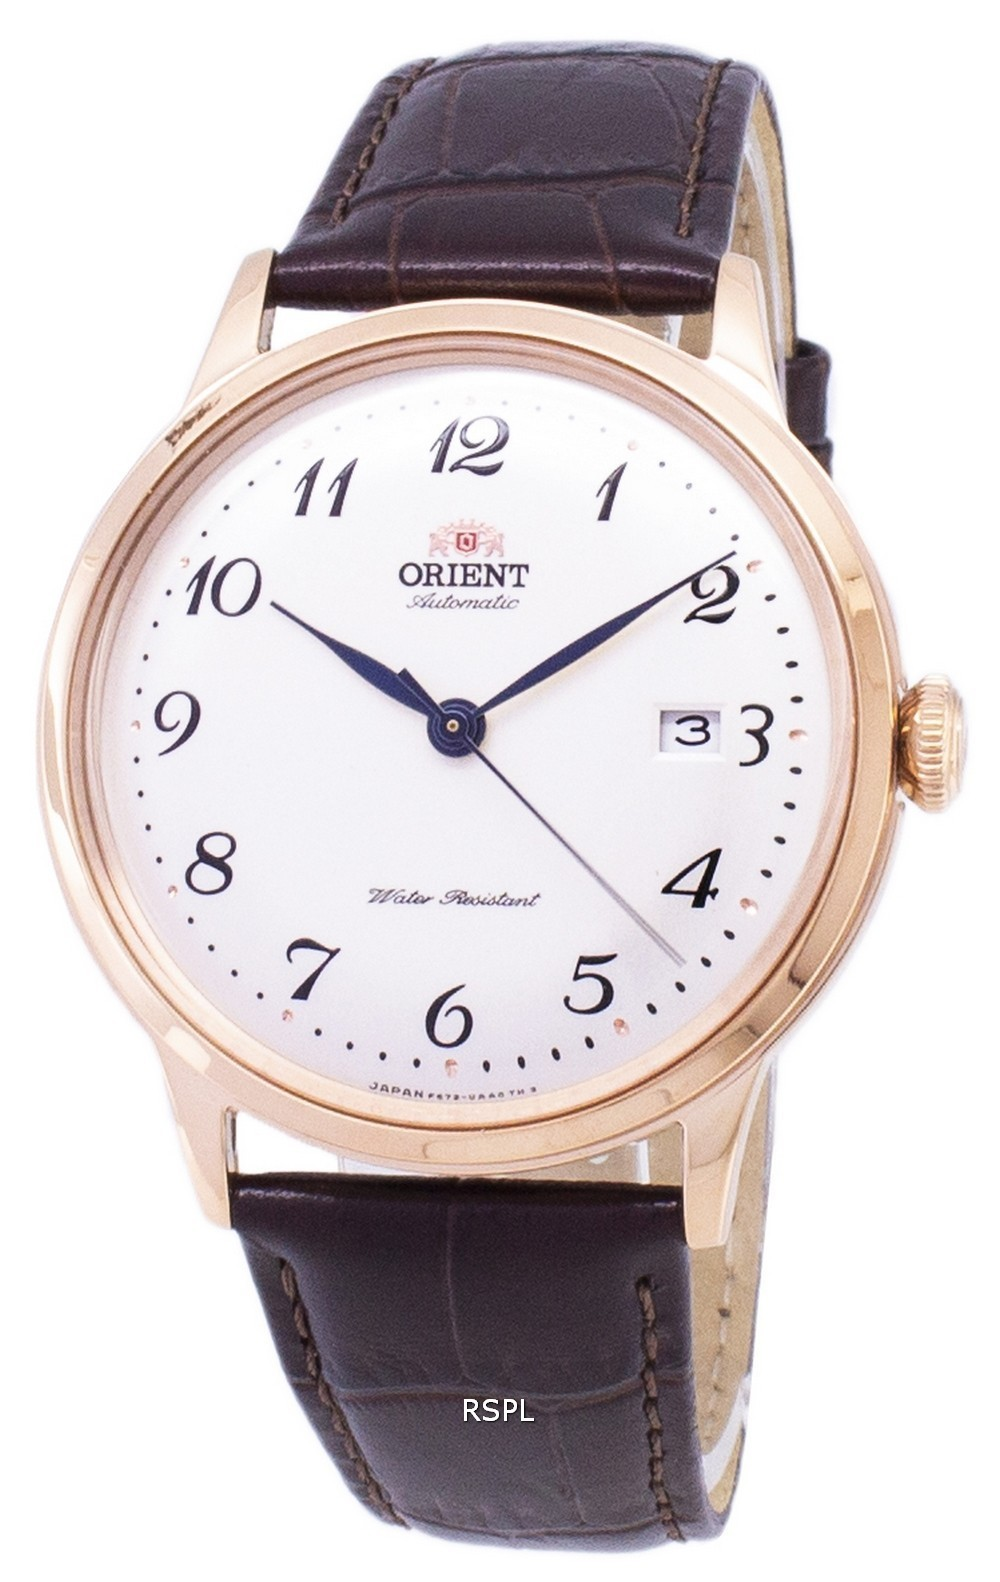 Orient-Analog-Automatic-Japan-Made-RA-AC0001S00C-Men-039-s-Watch